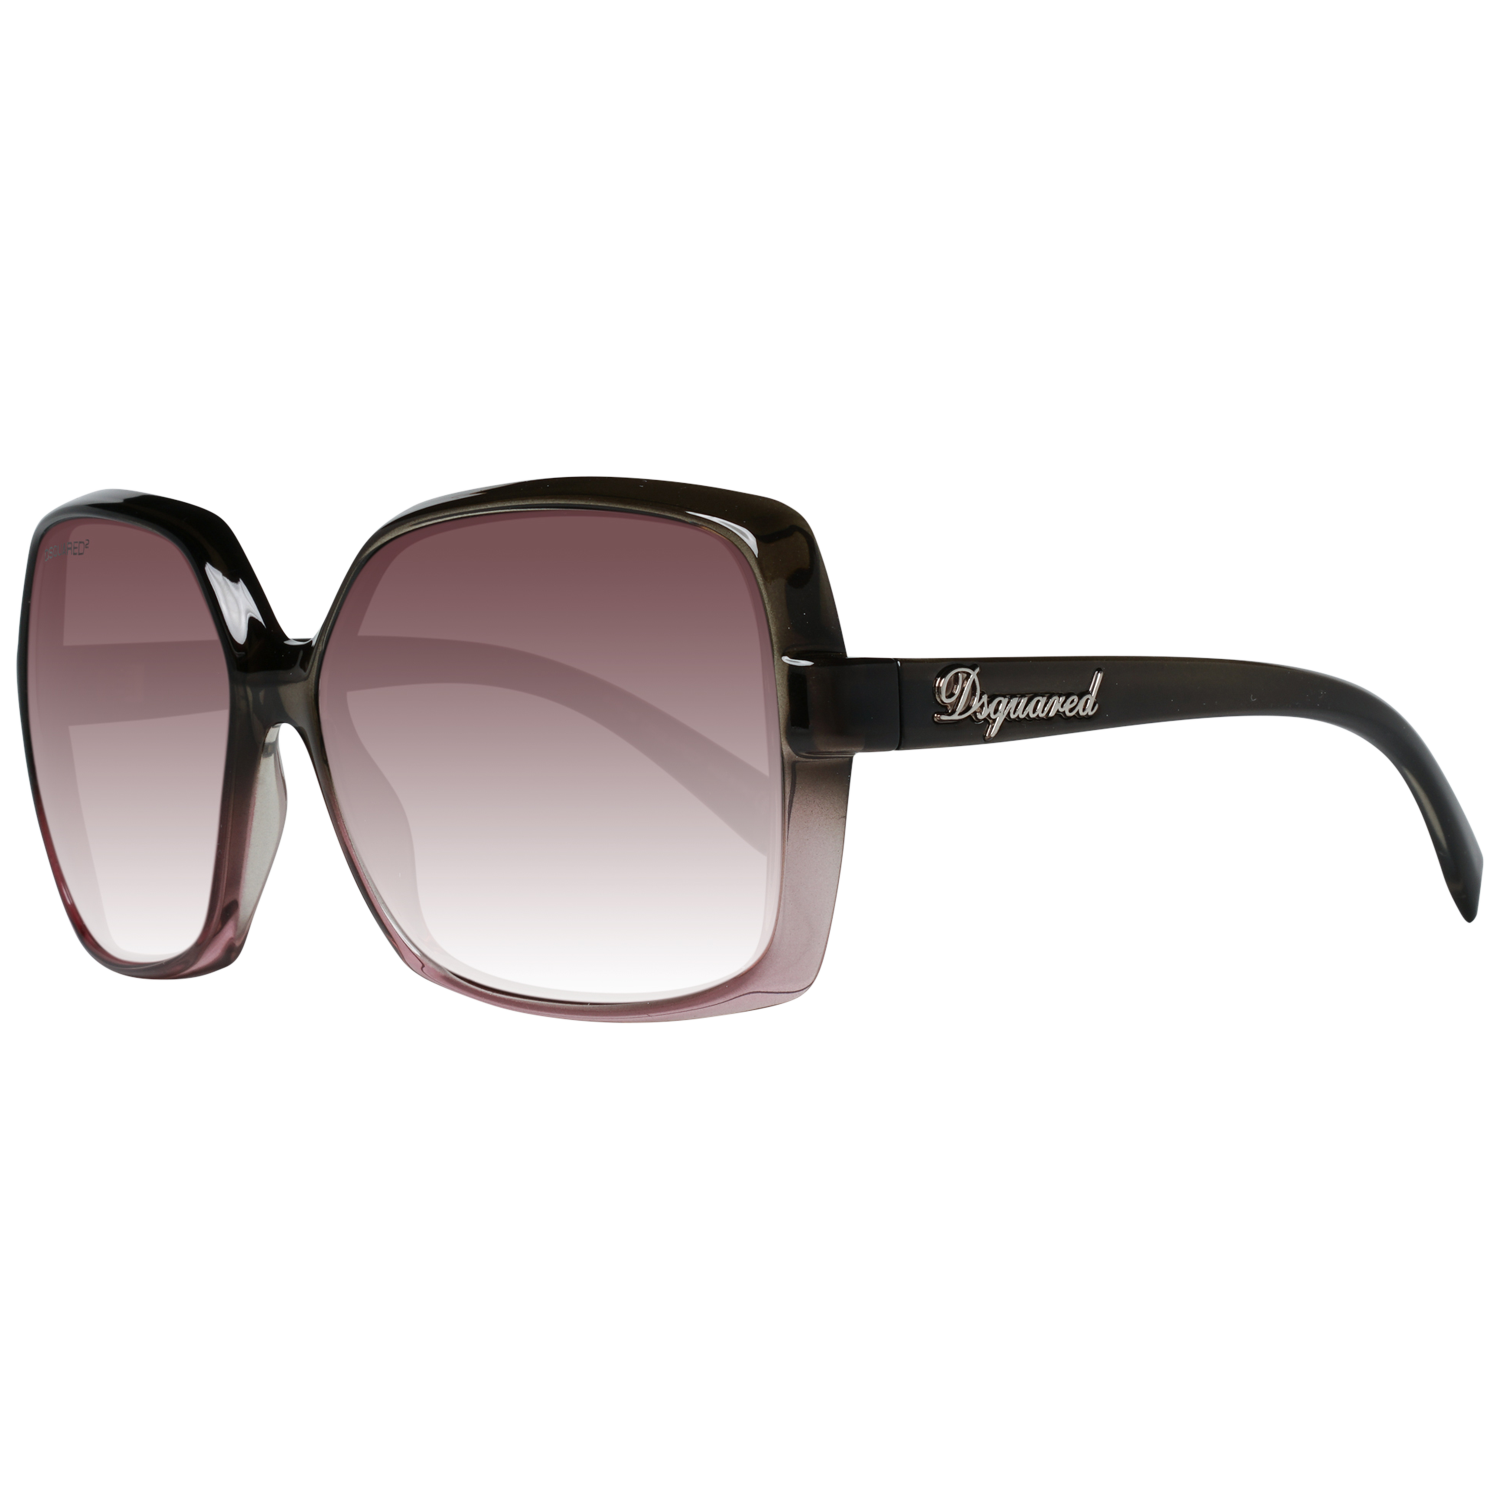 Dsquared2 Sunglasses DQ0015 98F 59 Grey